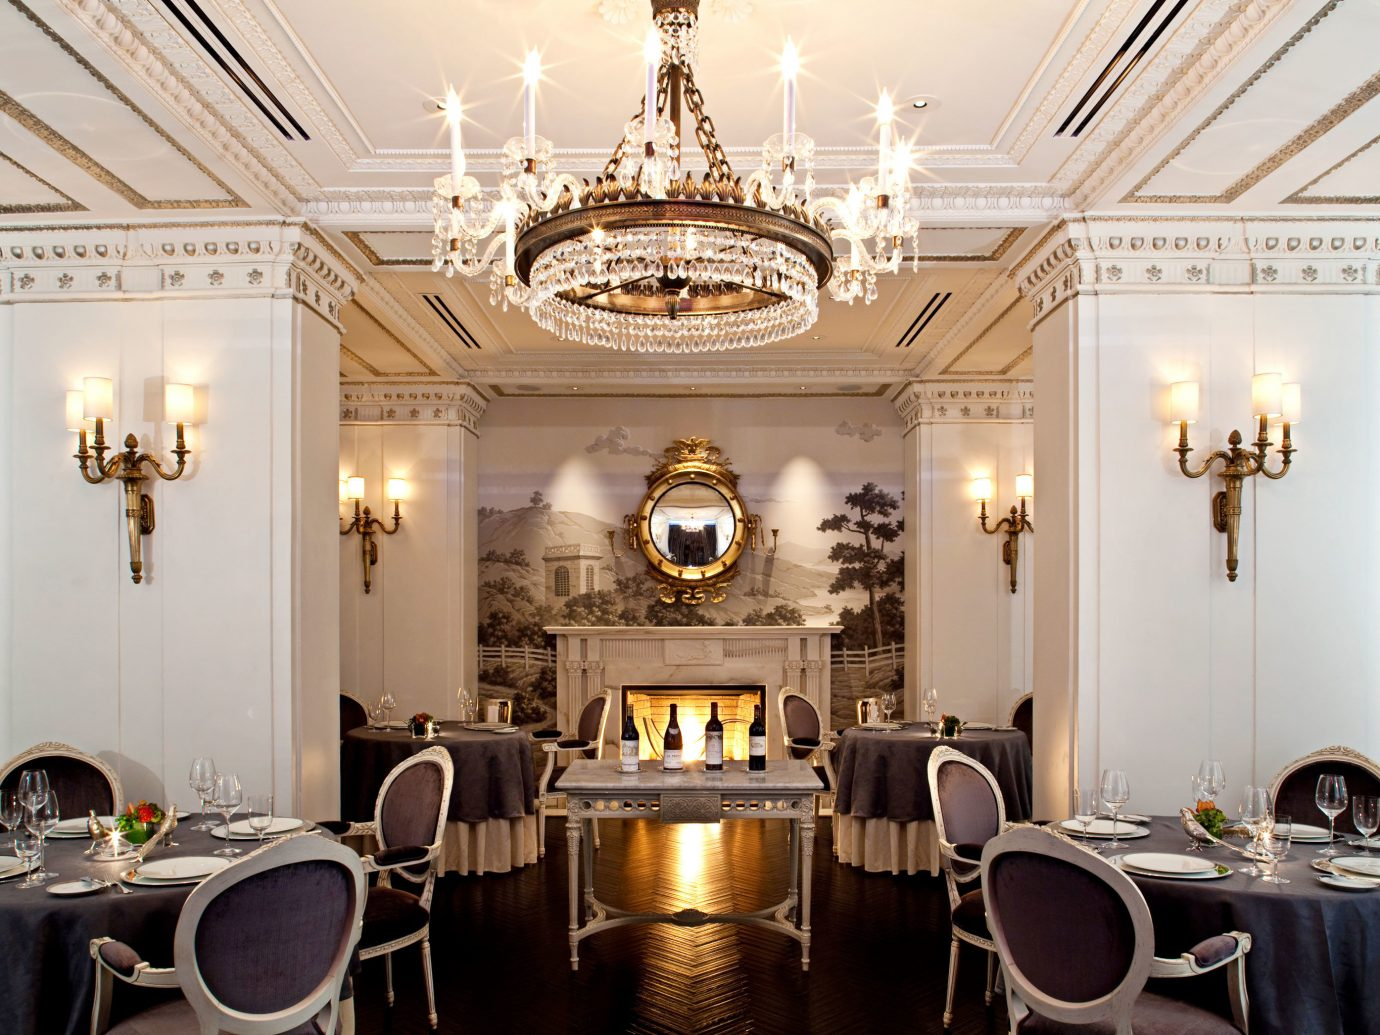 Restaurant at The Jefferson, Washington D.C.